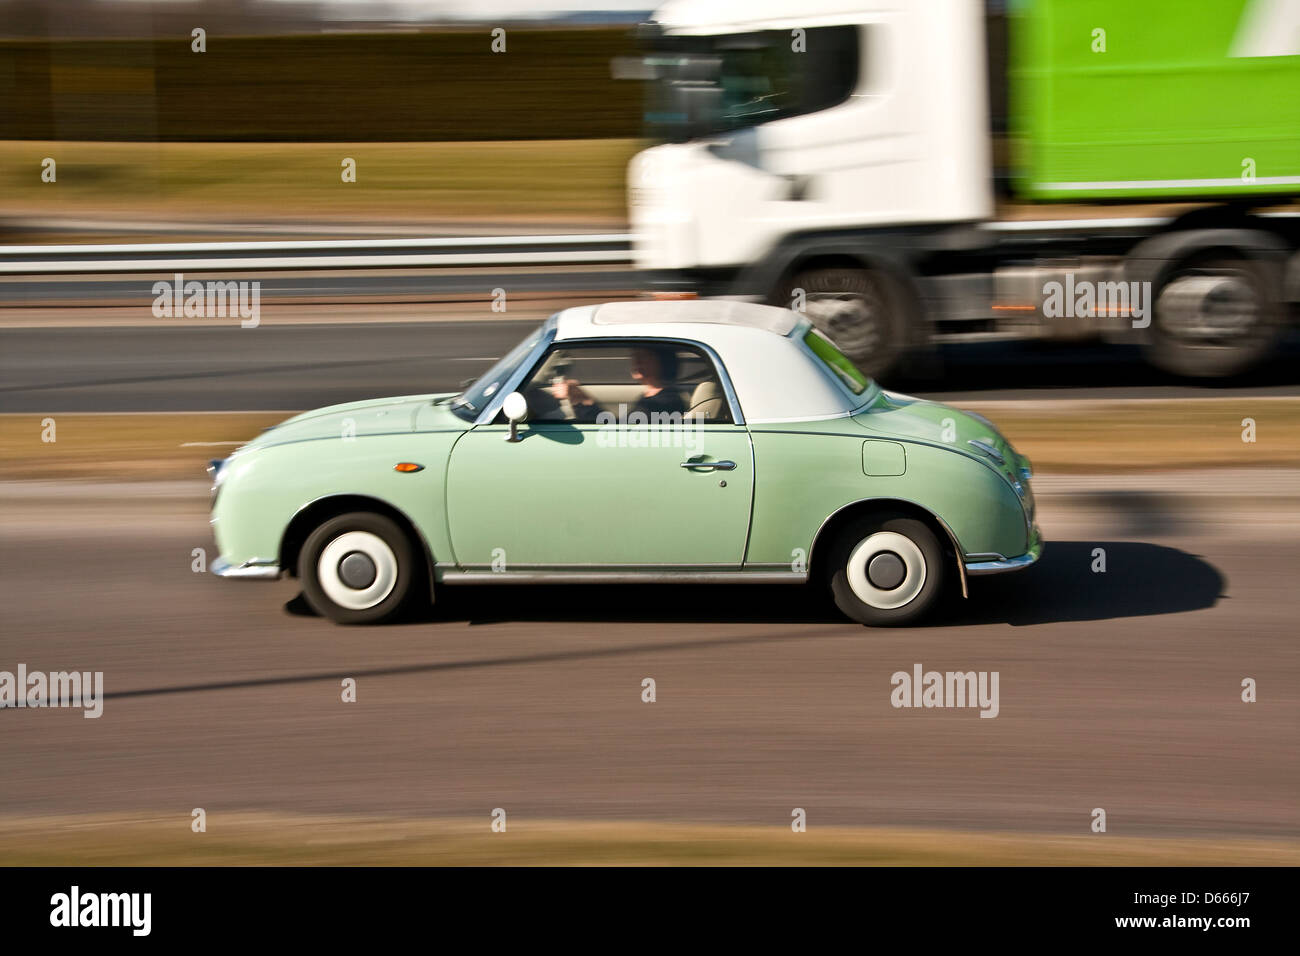 Retro 1960`s style Nissan Figaro Japanese car being overtaken by a ...